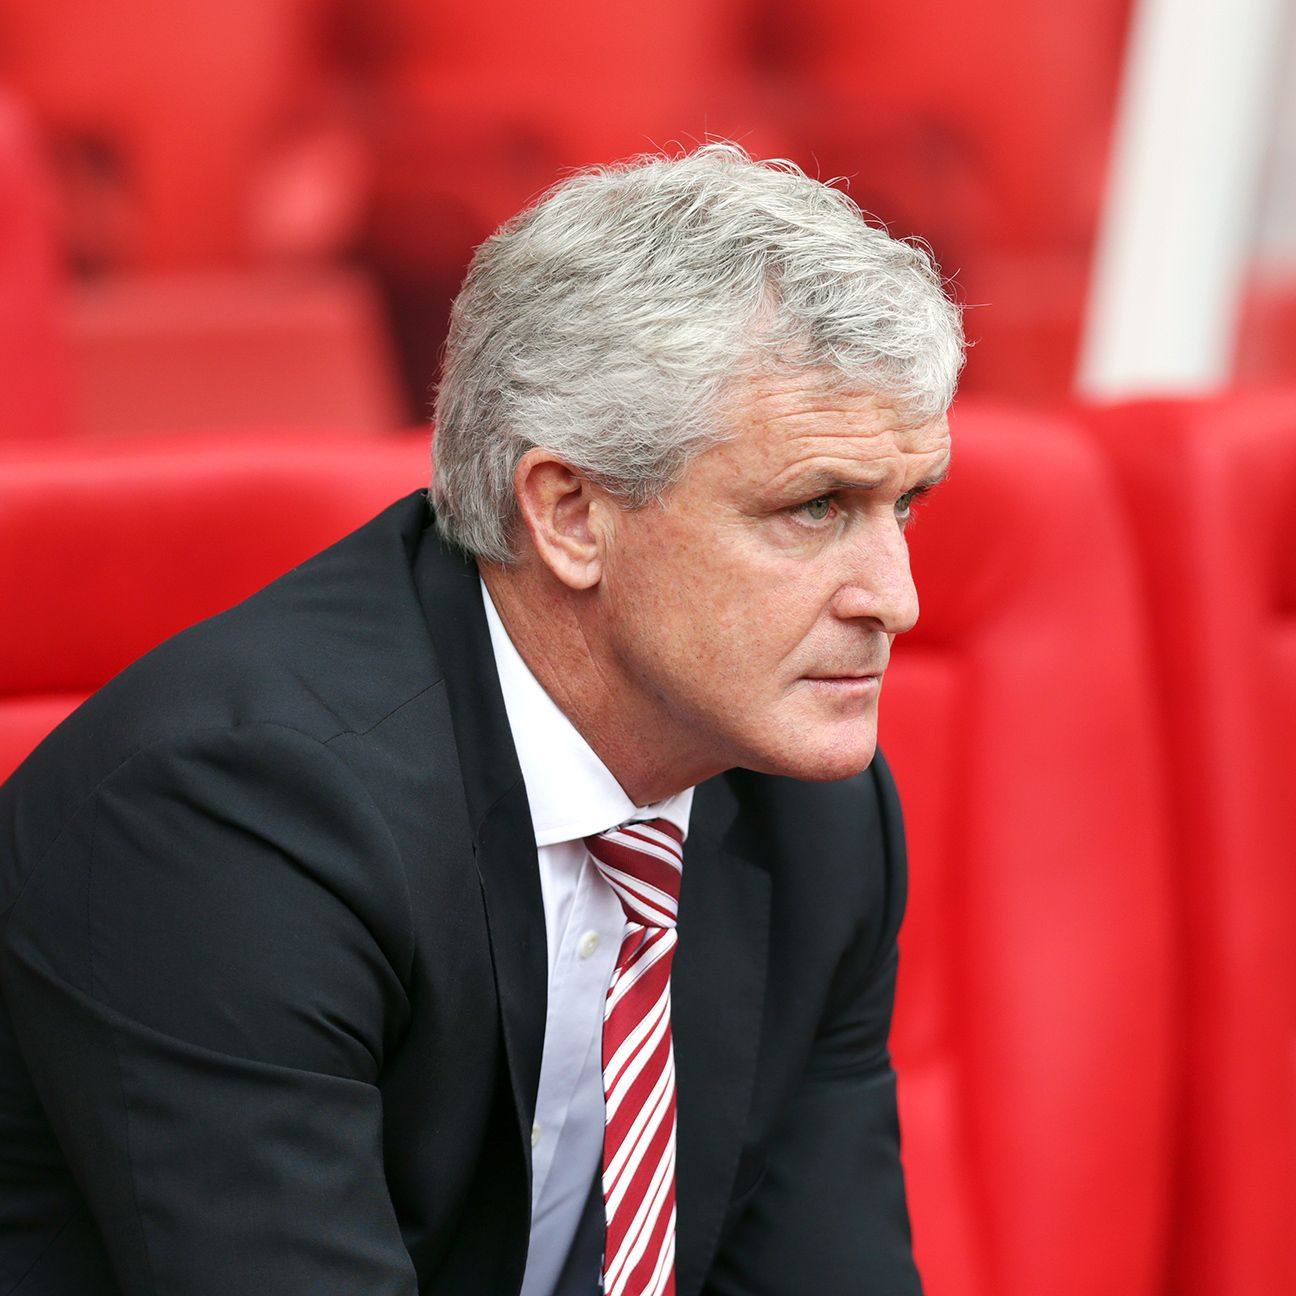 The pressure is on Stoke manager Mark Hughes to collect the team's first win of the season at home against Bournemouth.